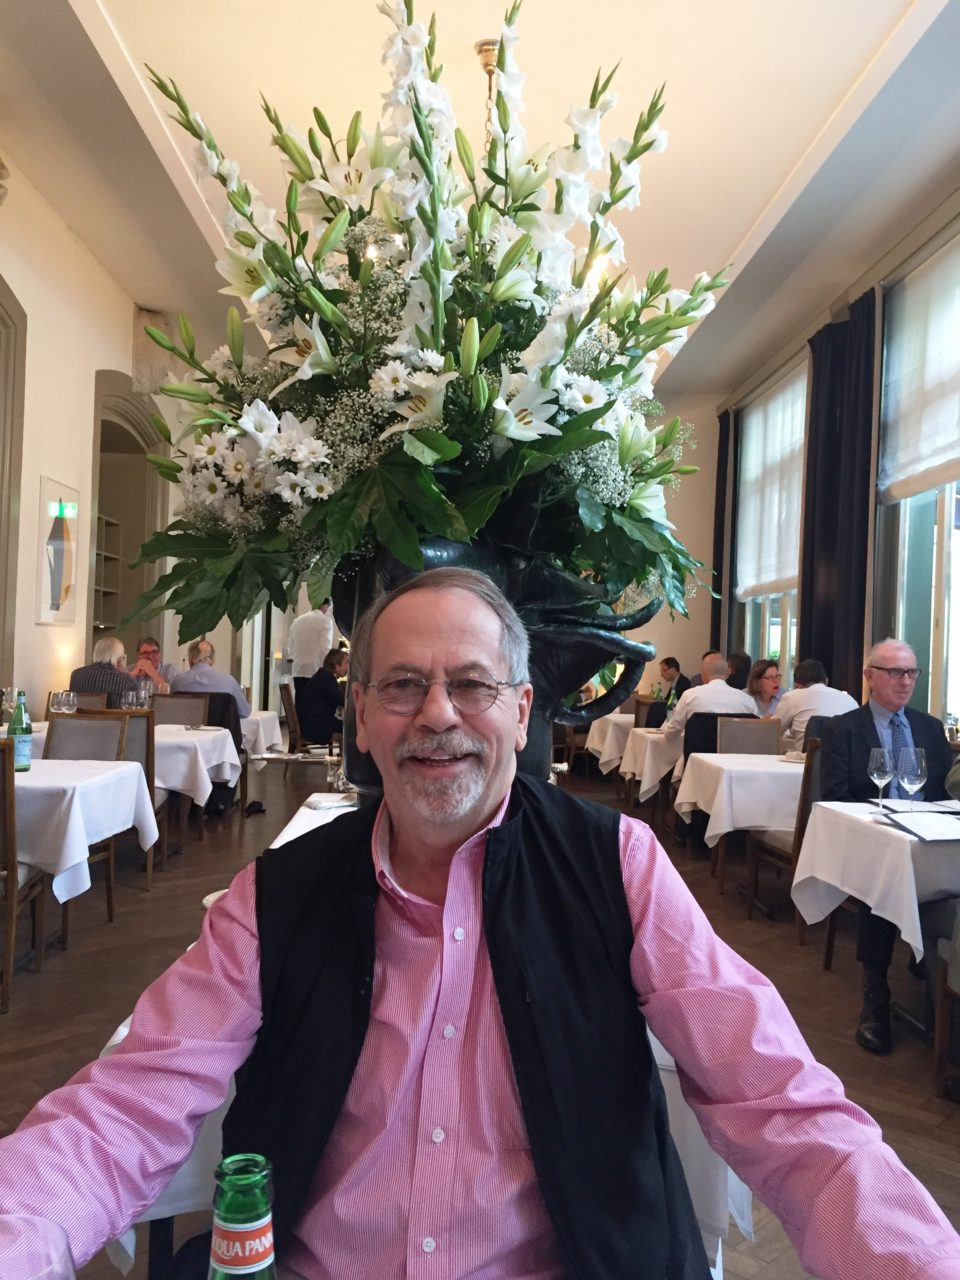 Denis at the KunstHalle Restaurant in Basel, Switzerland